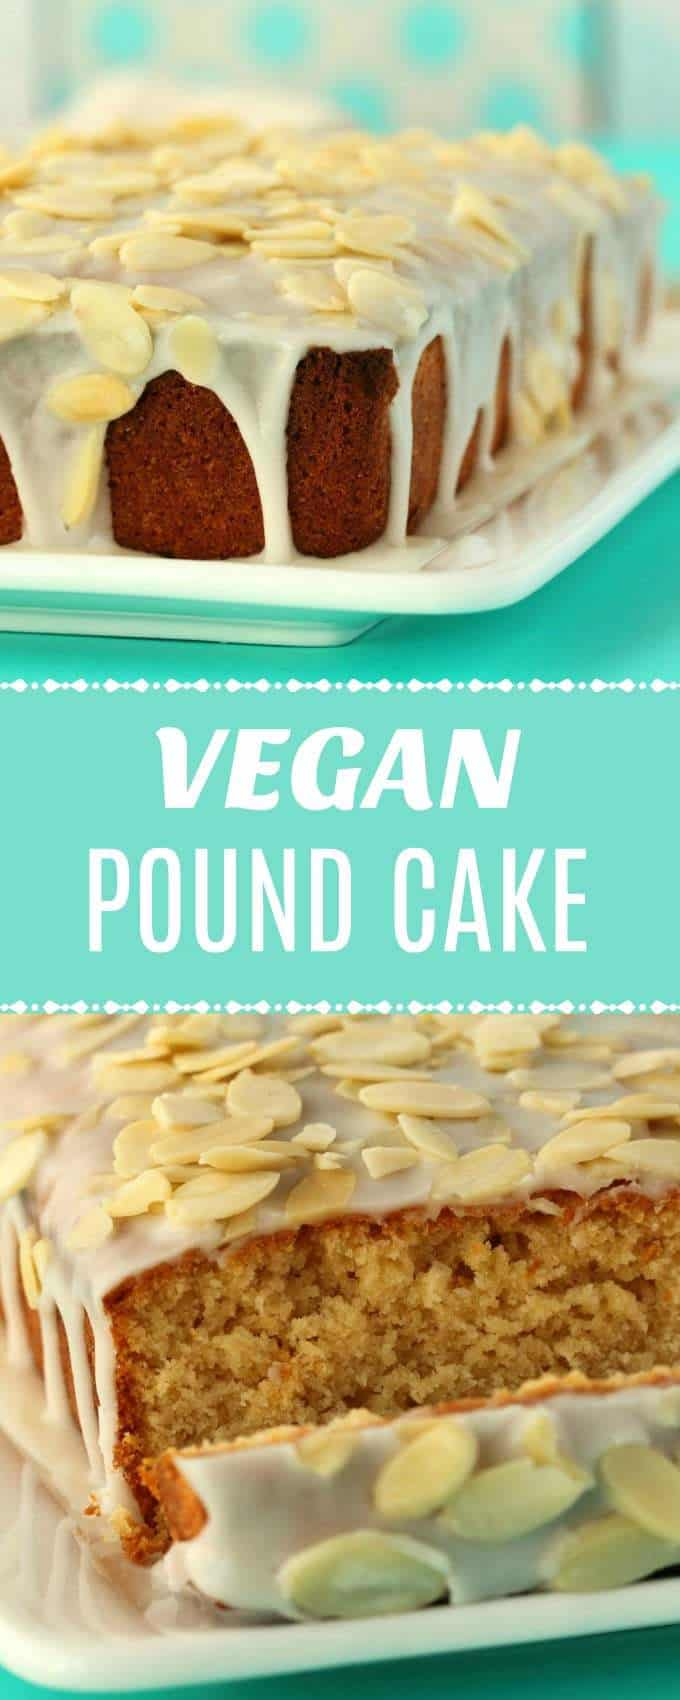 Vegan pound cake with an almond glaze. Moist, rich and dense (but not heavy) this pound cake is super simple and absolutely delicious. | lovingitvegan.com